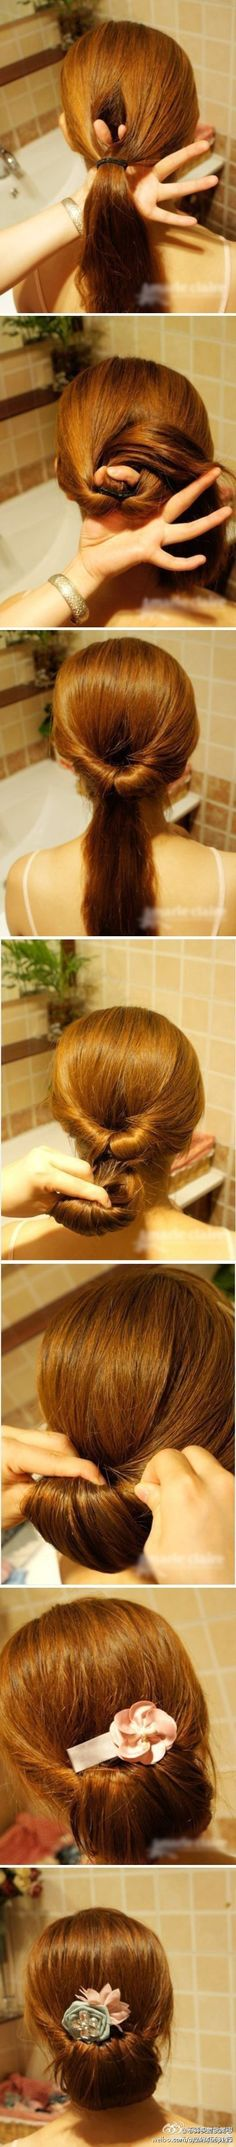 8-low-angular-half-circle-bun